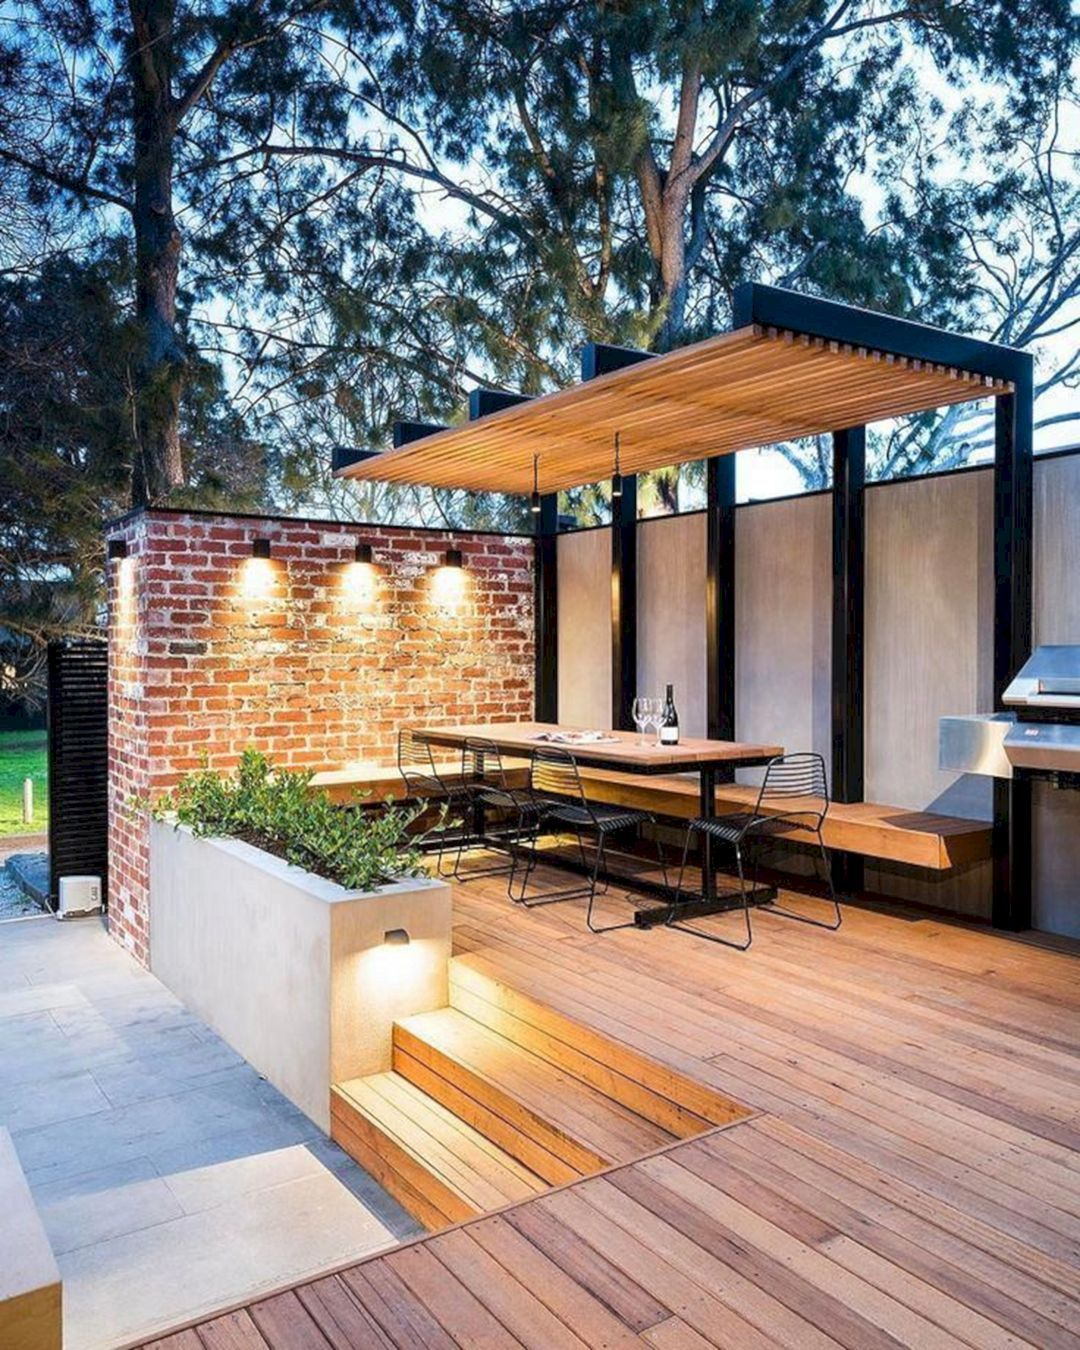 15 Modern Deck Patio Ideas For Backyard Design And Decoration Ideas #deckpatio